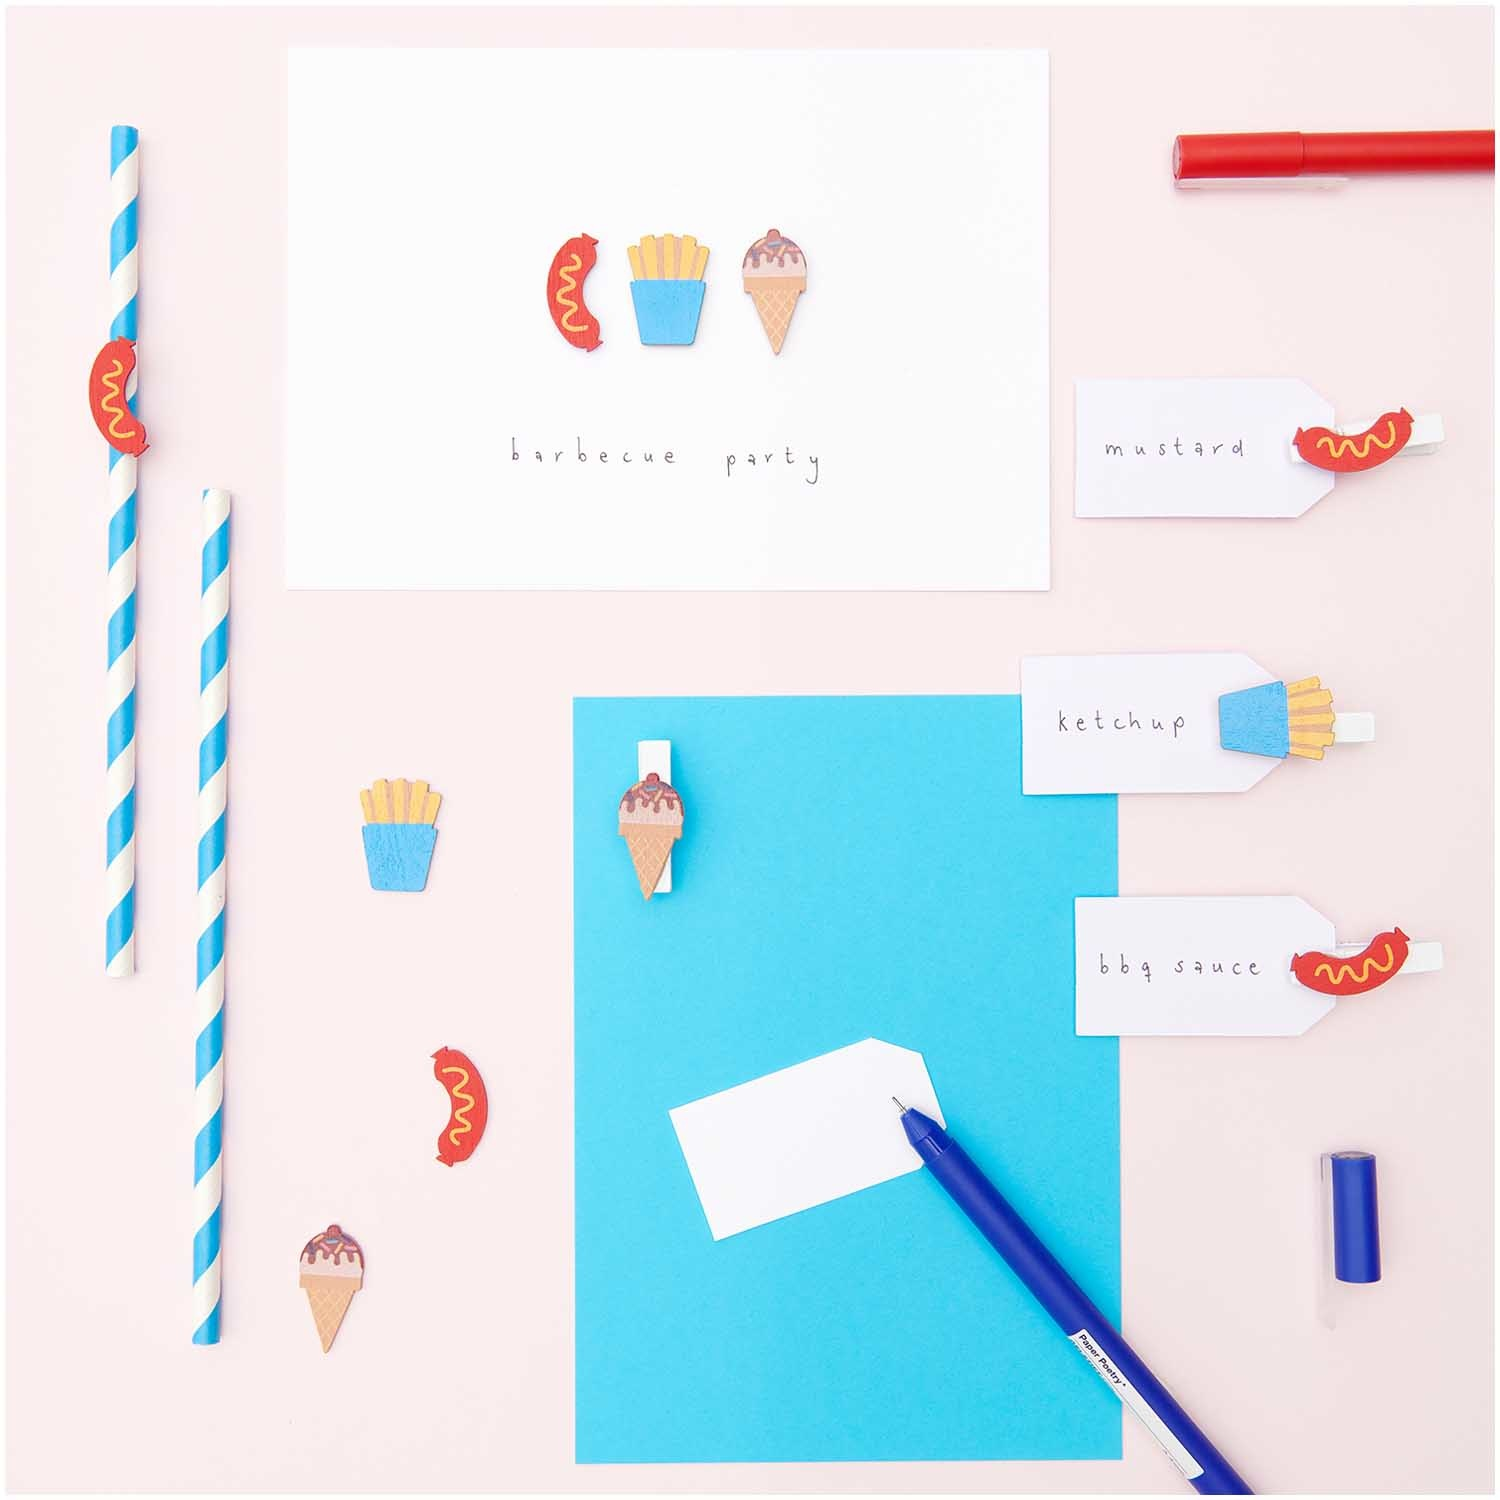 Rico NAY Deco-confetti snack, ice cream, french fries, sausage, wood, 36 p cs, 27mm x 12mm - 18,5mm x 25mm